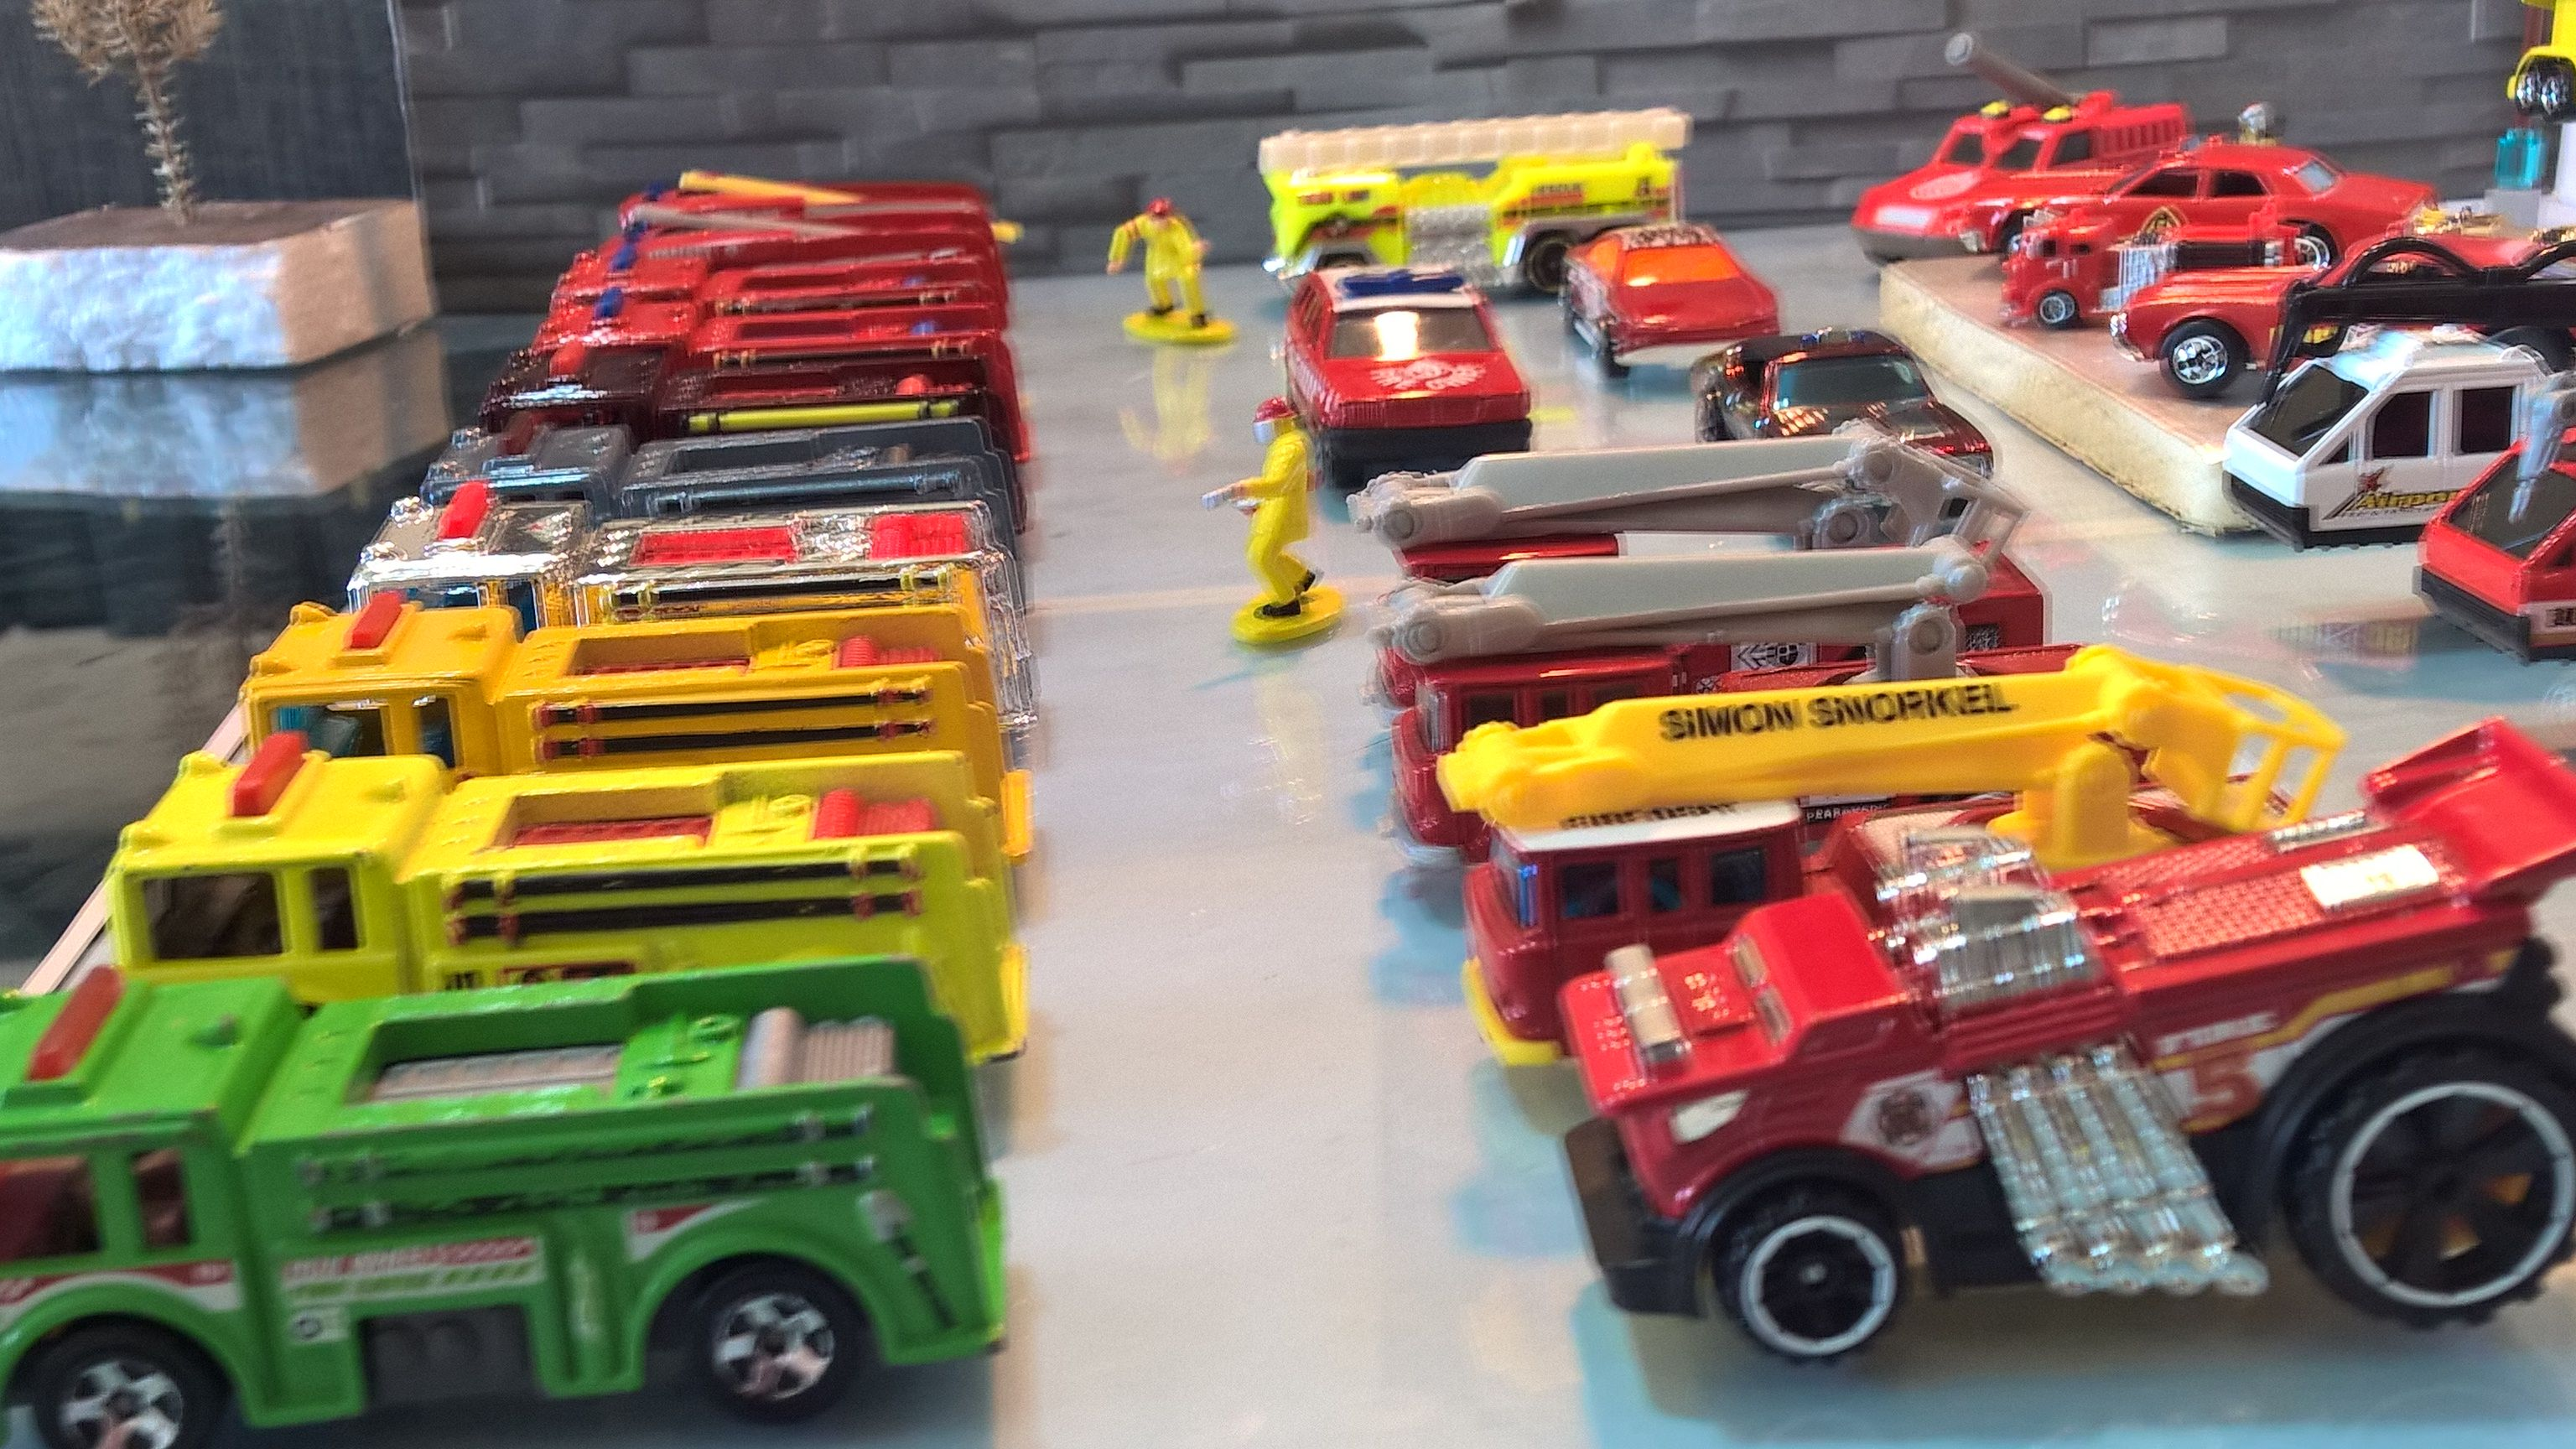 Organized Hot Wheels Monster Trucks Collection Using 97 Curtain